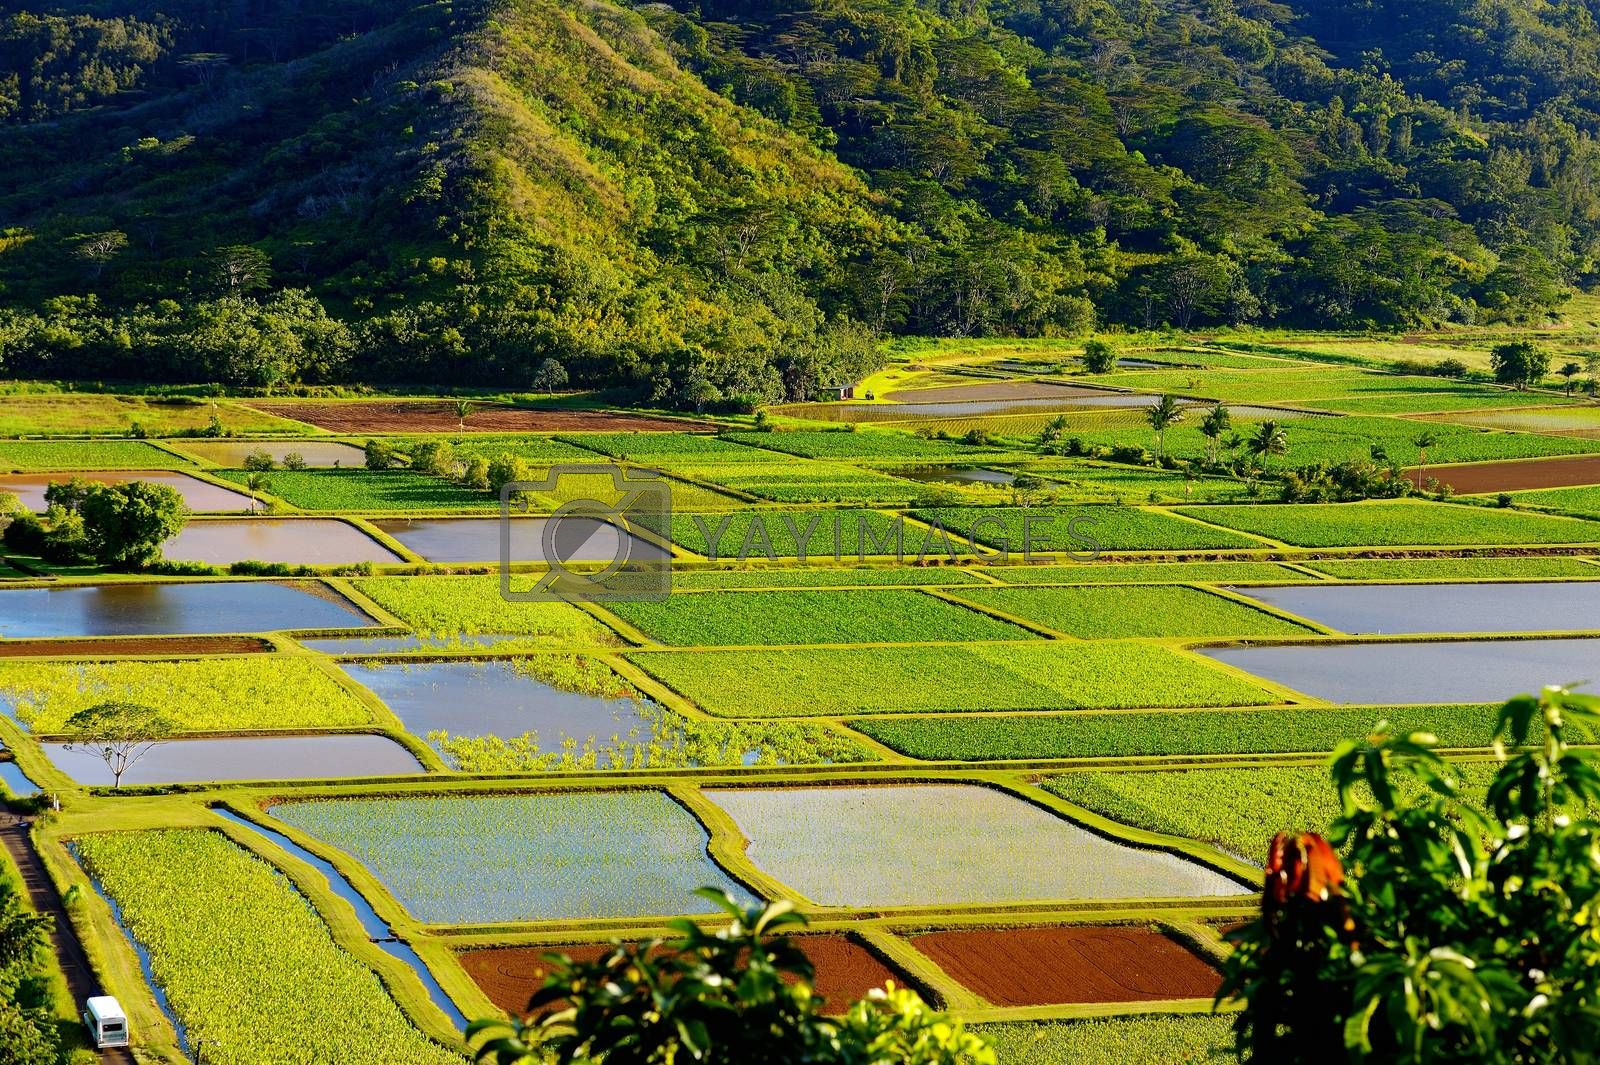 Taro fields in beautiful Hanalei Valley on Kauai island, Hawaii